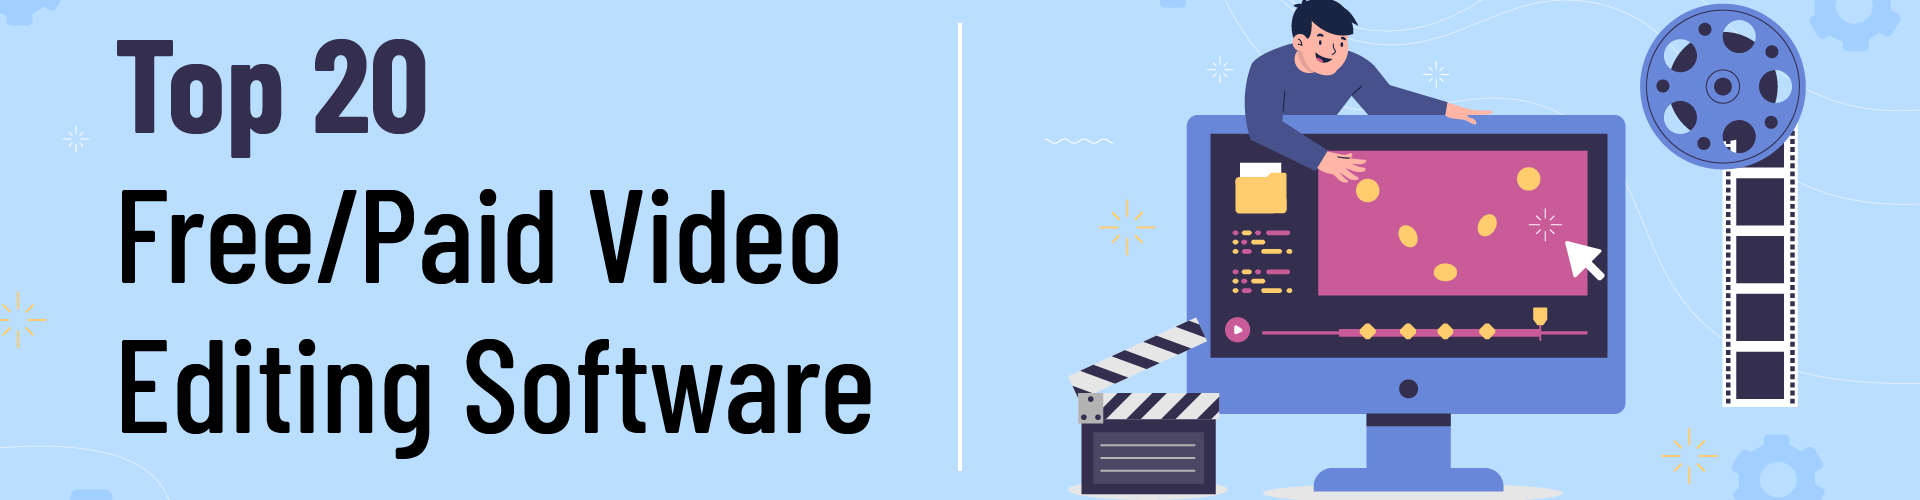 Top 20 Free/Paid Video Editing Software To Use